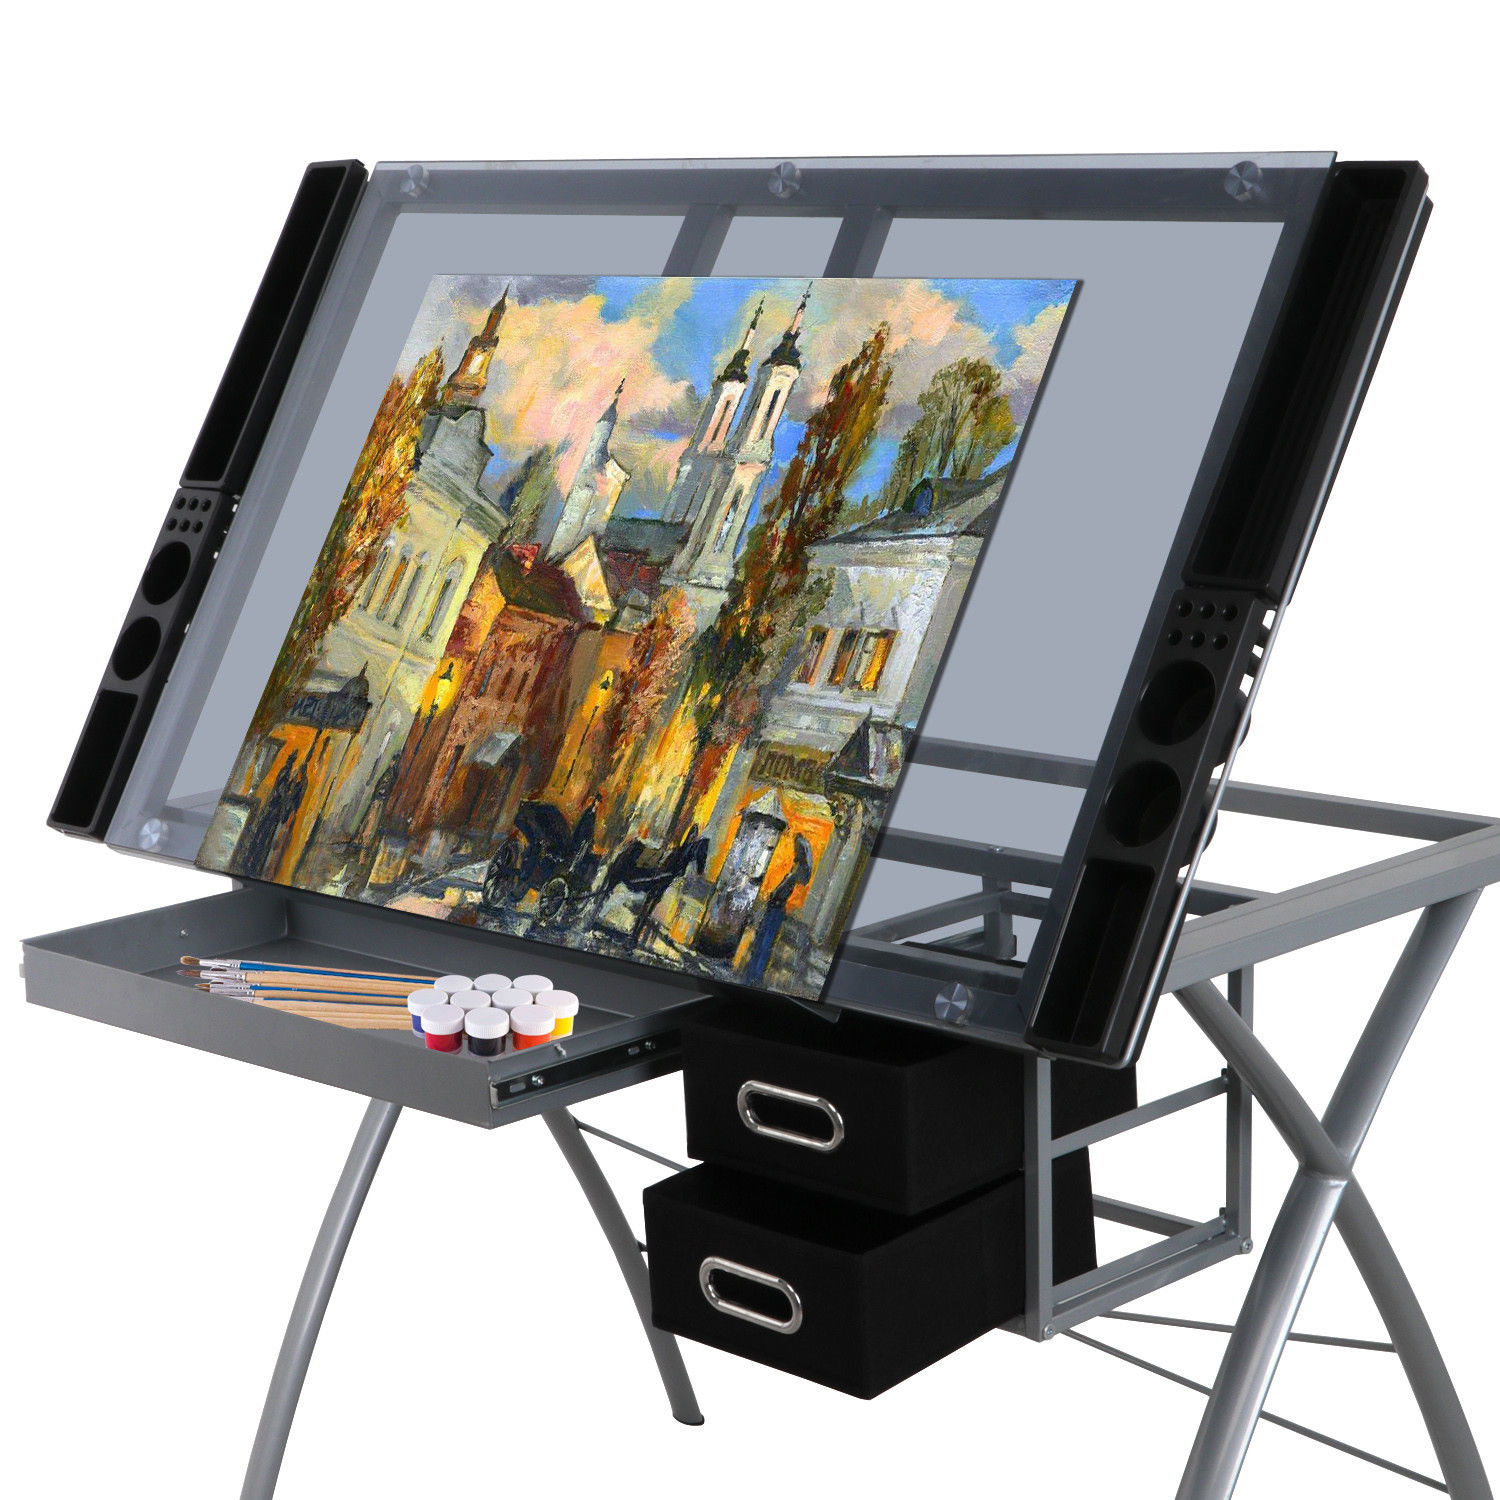 ZENY Adjustable Drafting Table Craft Station Drawing Desk Glass Top Art & Craft Hobby